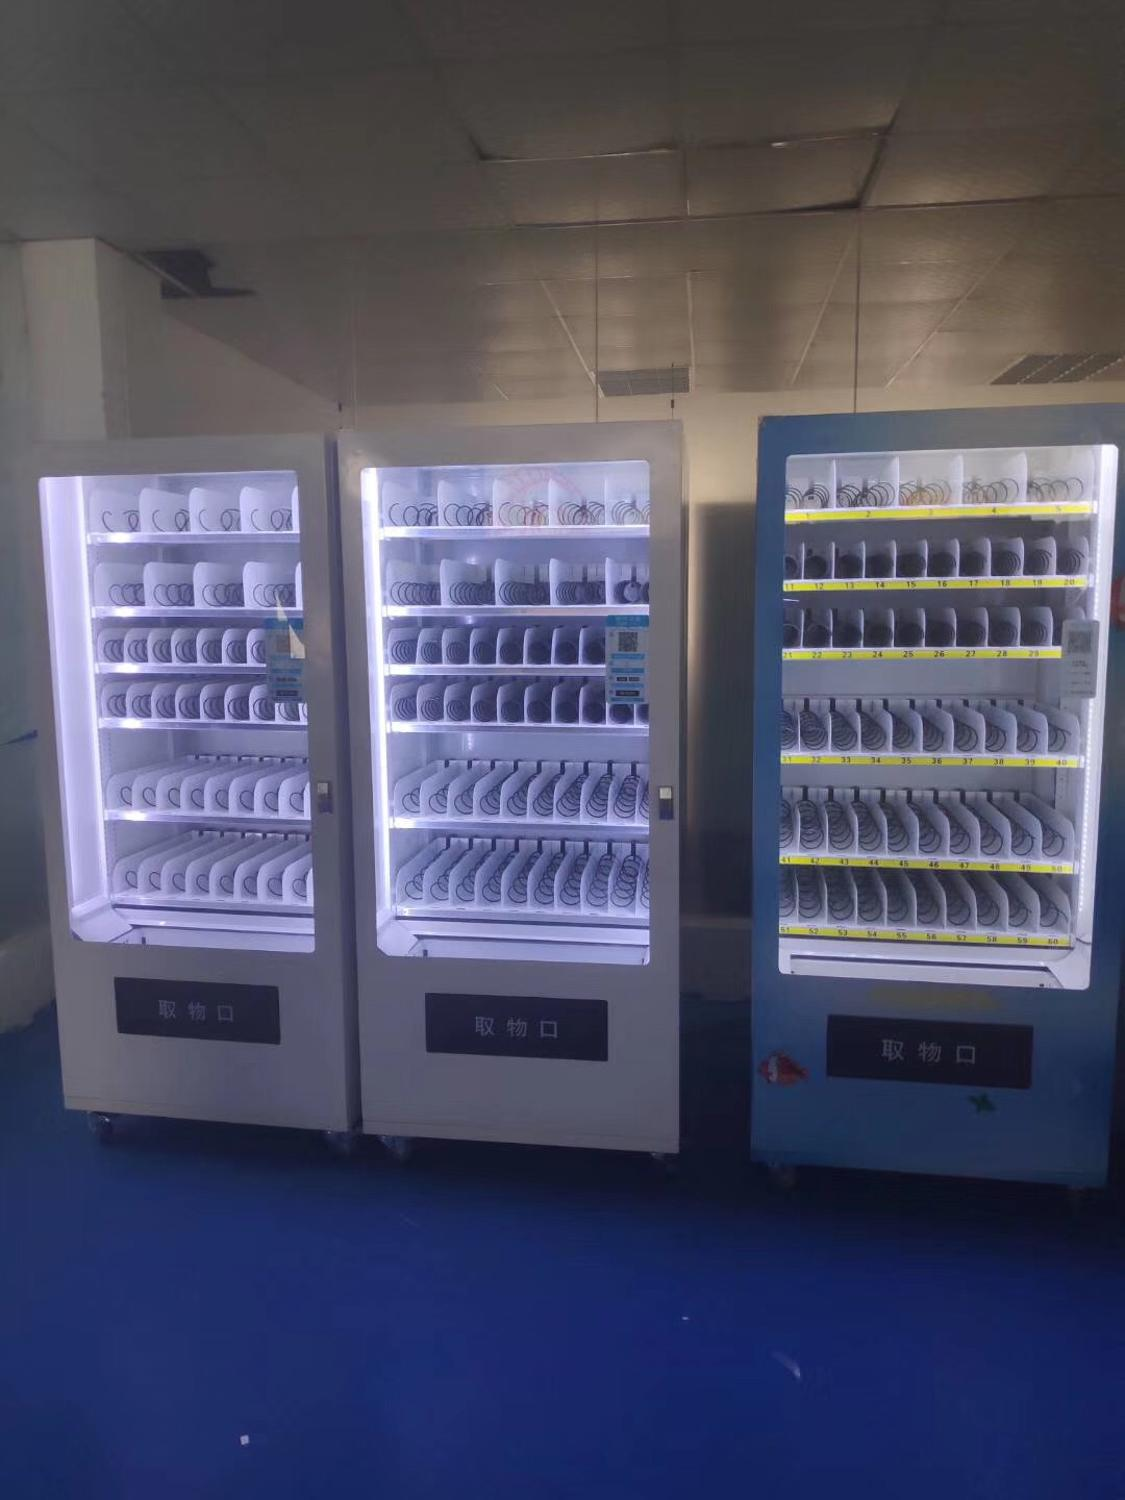 24 Hours Self Service Terminal Drinks And Snacks Vending Machine With Lift System